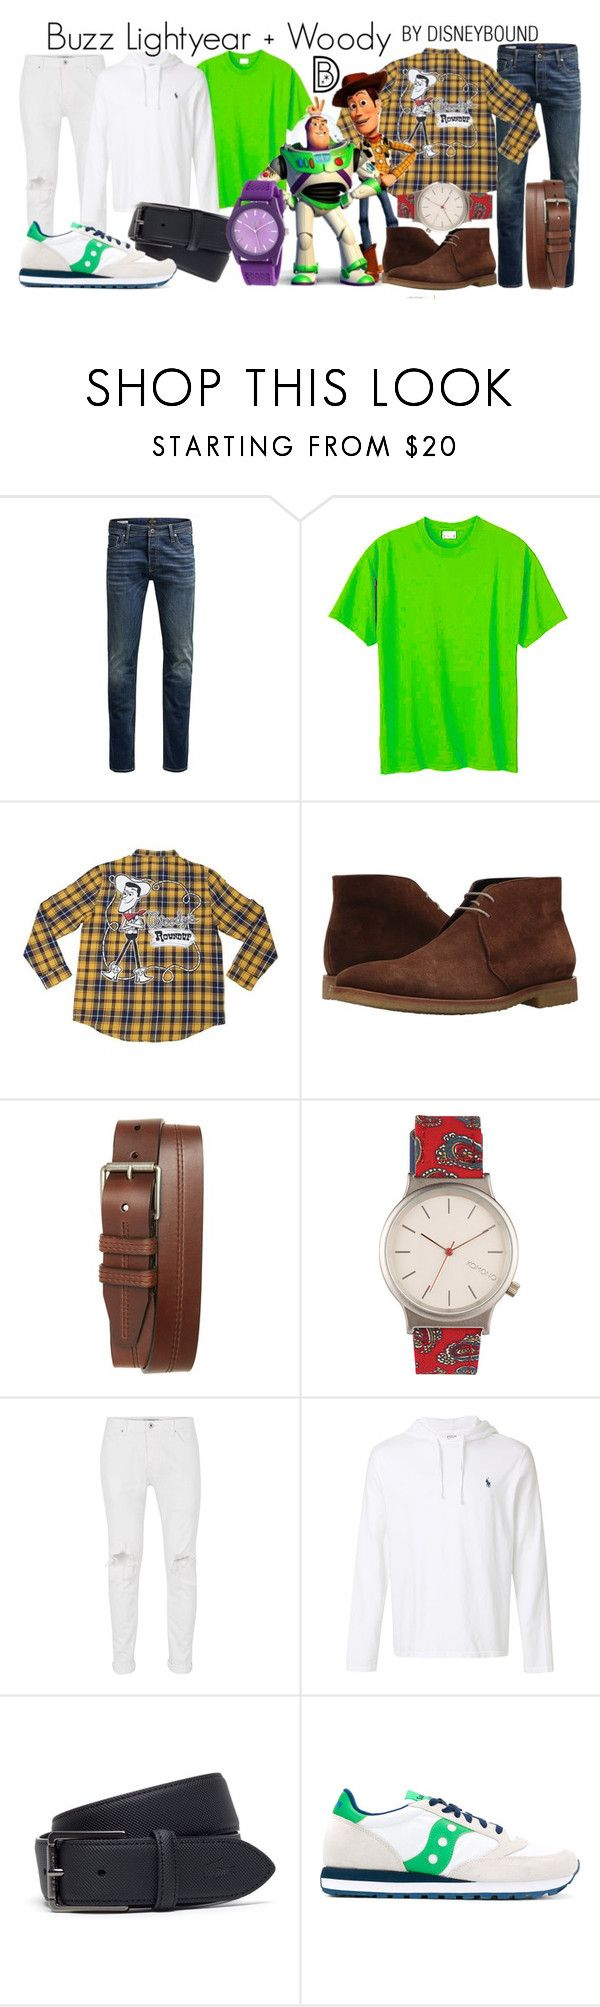 """""""Buzz Lightyear + Woody"""" by leslieakay ❤ liked on Polyvore featuring Jack & Jones, Hanes, Woody's, To Boot New York, 1901, Komono, Topman, Polo Ralph Lauren, Lacoste and Saucony"""